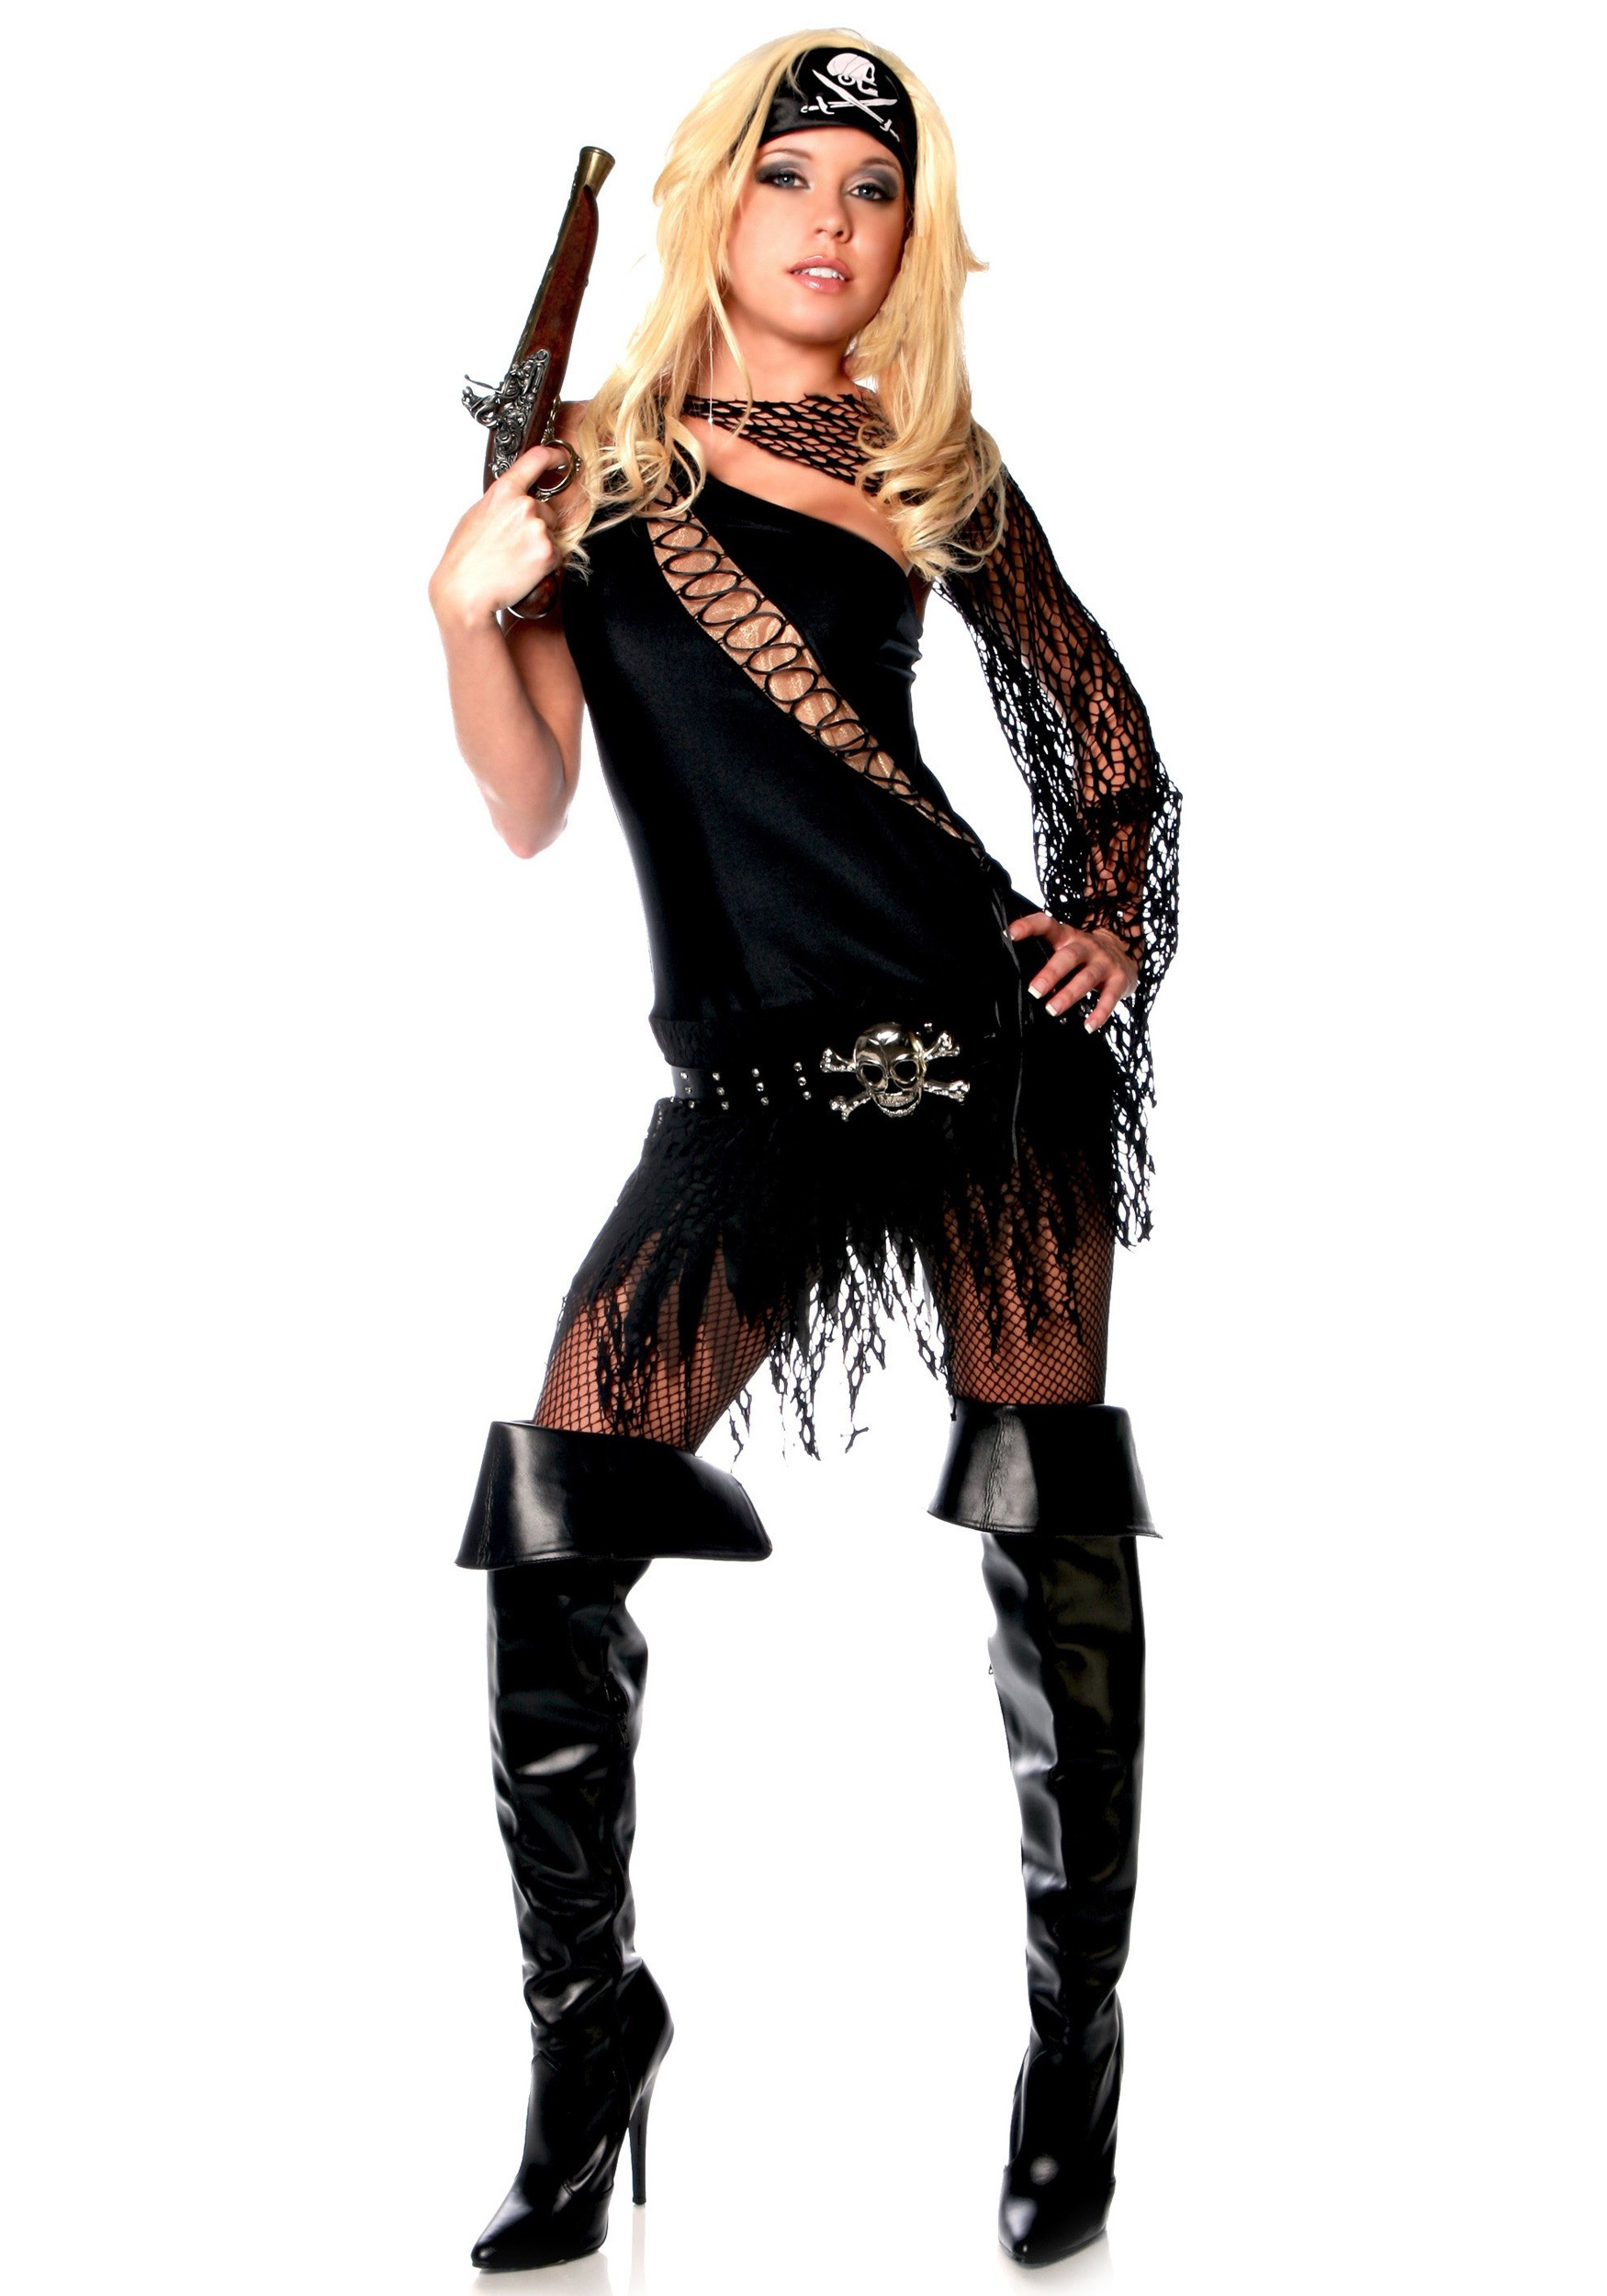 Forbidden Pirate Costume - Halloween Costume Ideas 2016